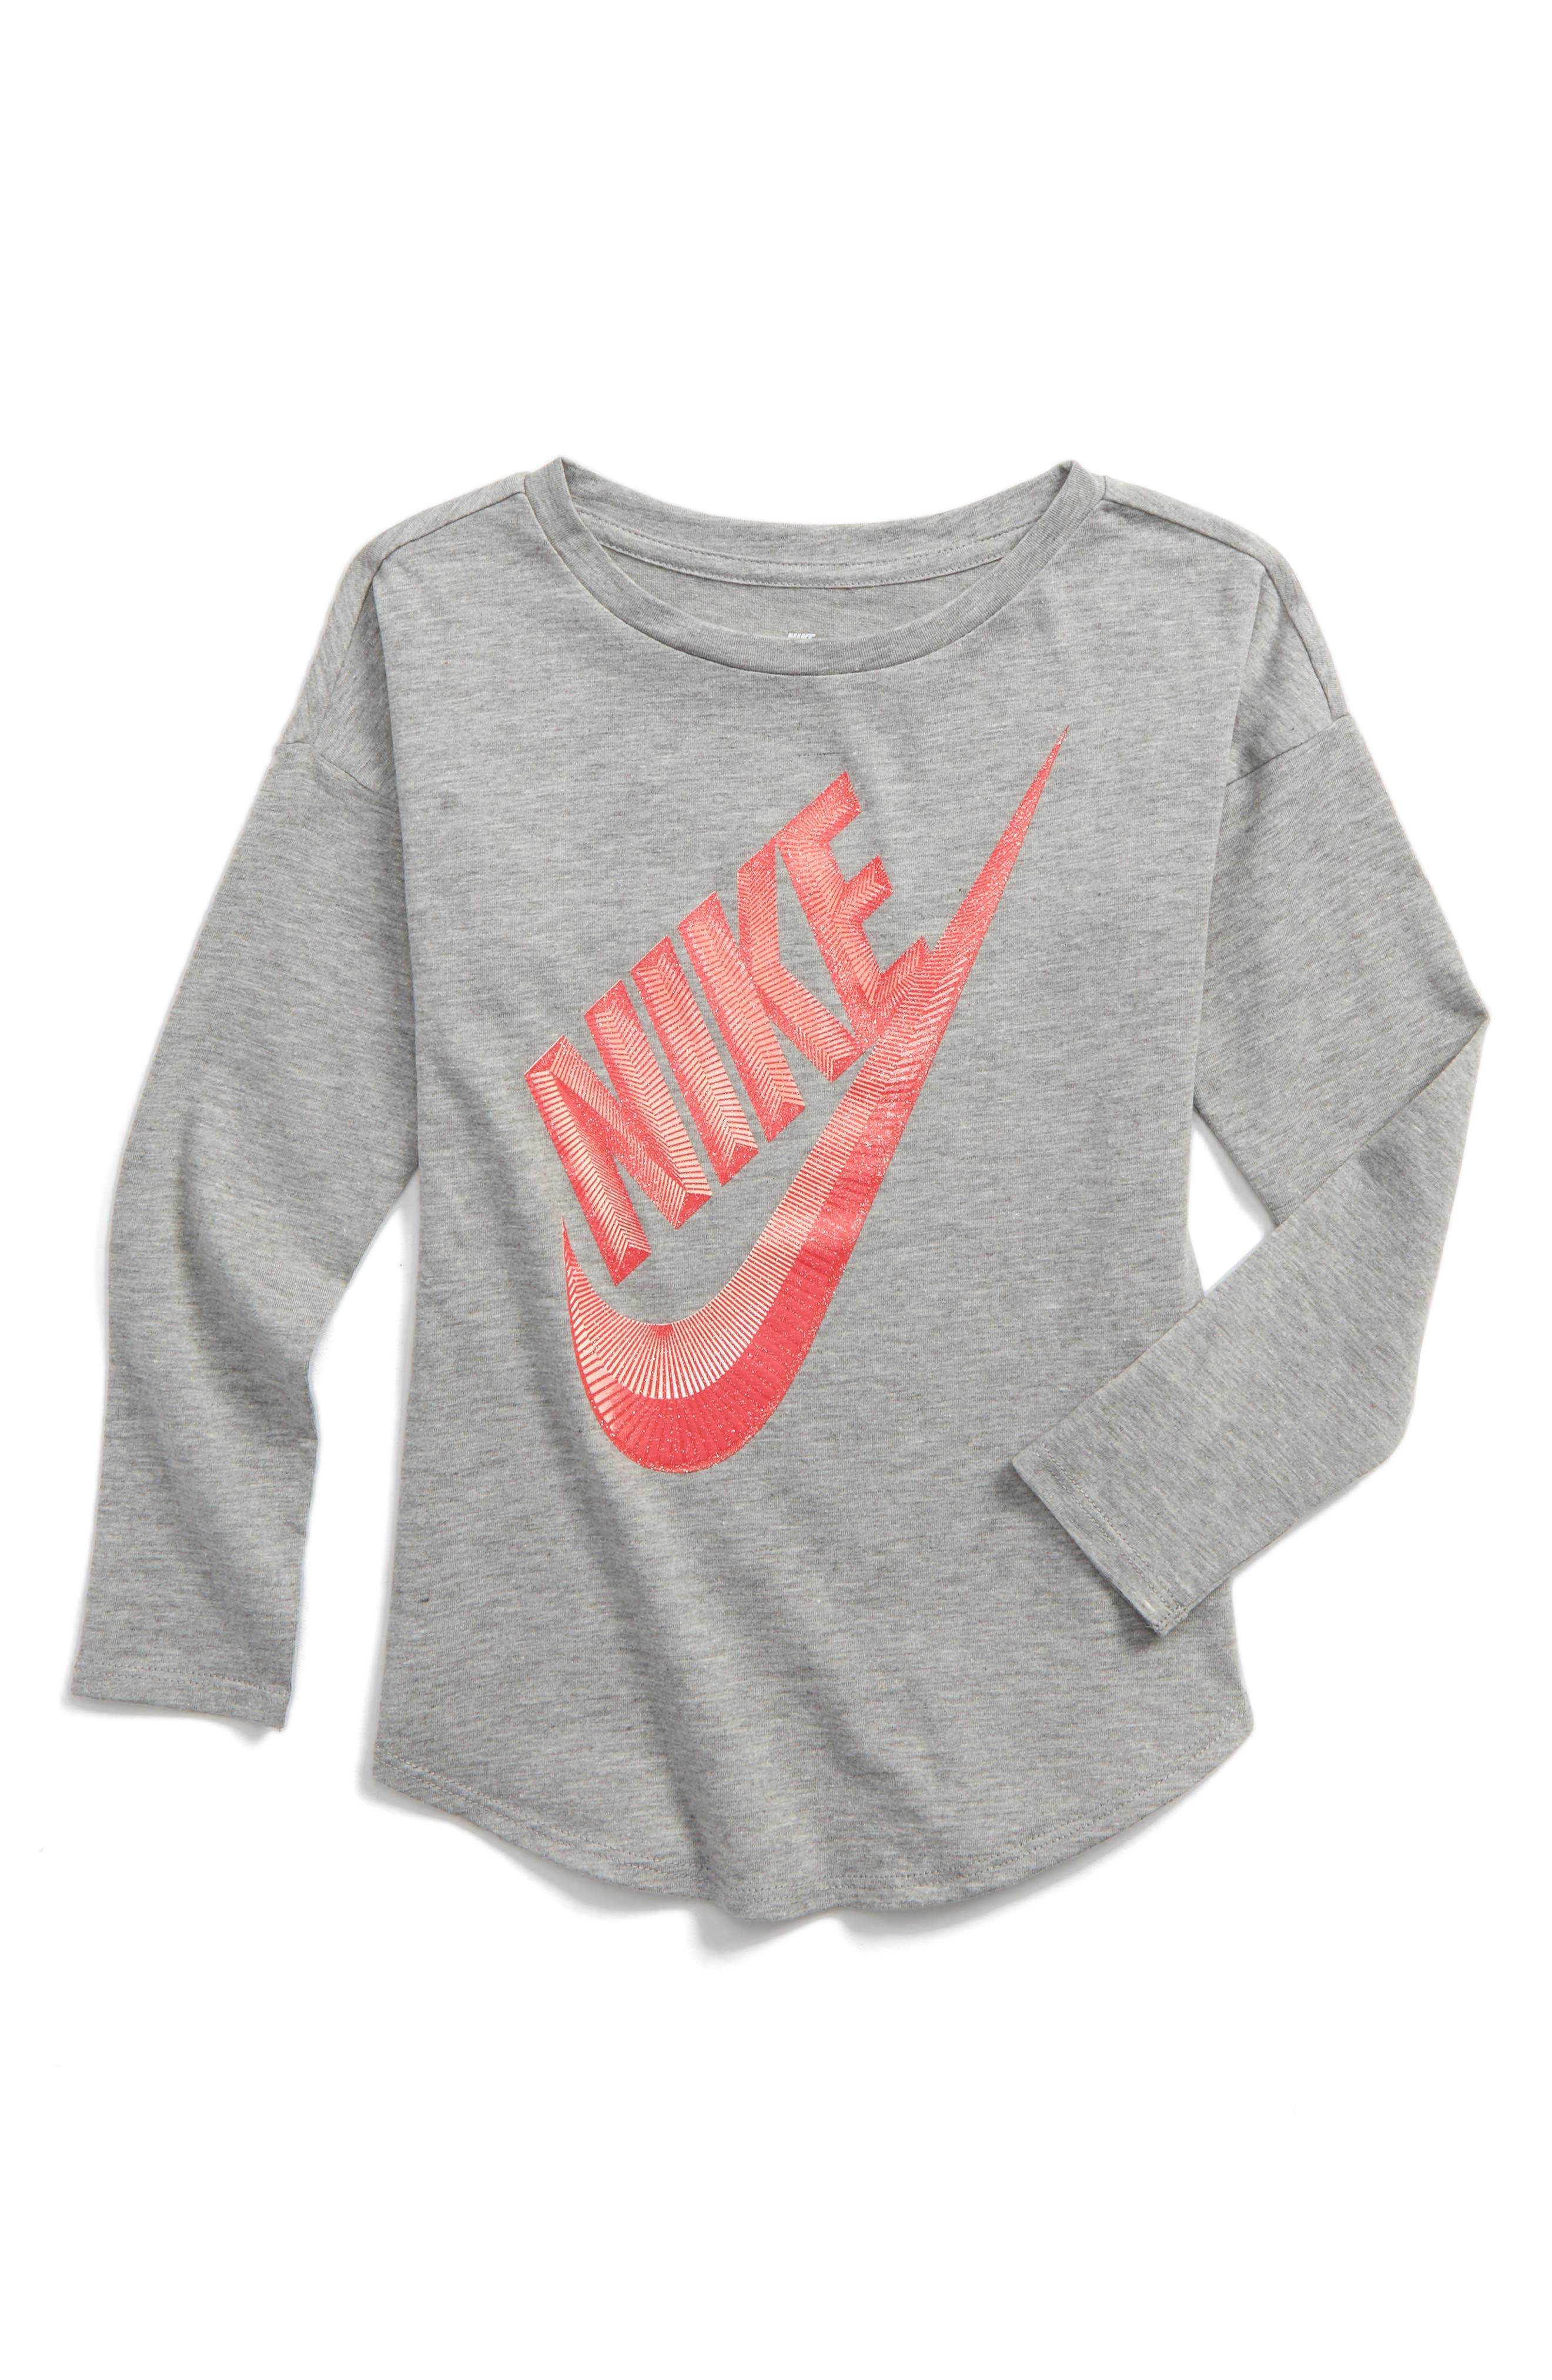 Main Image - Nike Futura Modern Tee (Toddler Girls & Little Girls)